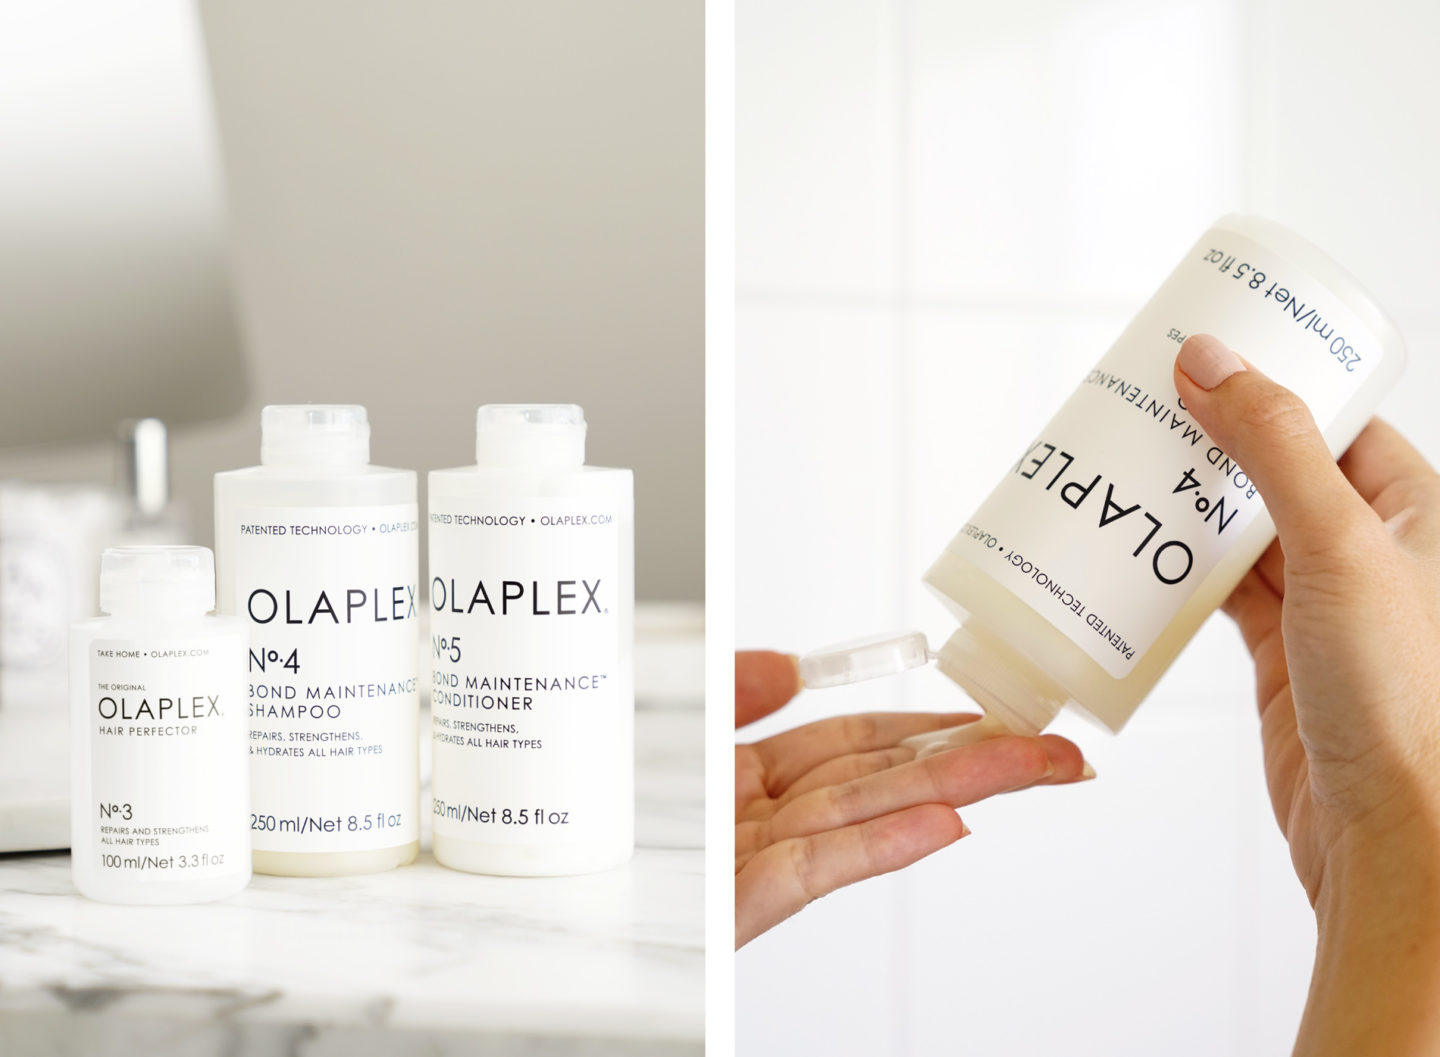 Olaplex Review for Cheveux faibles abîmés